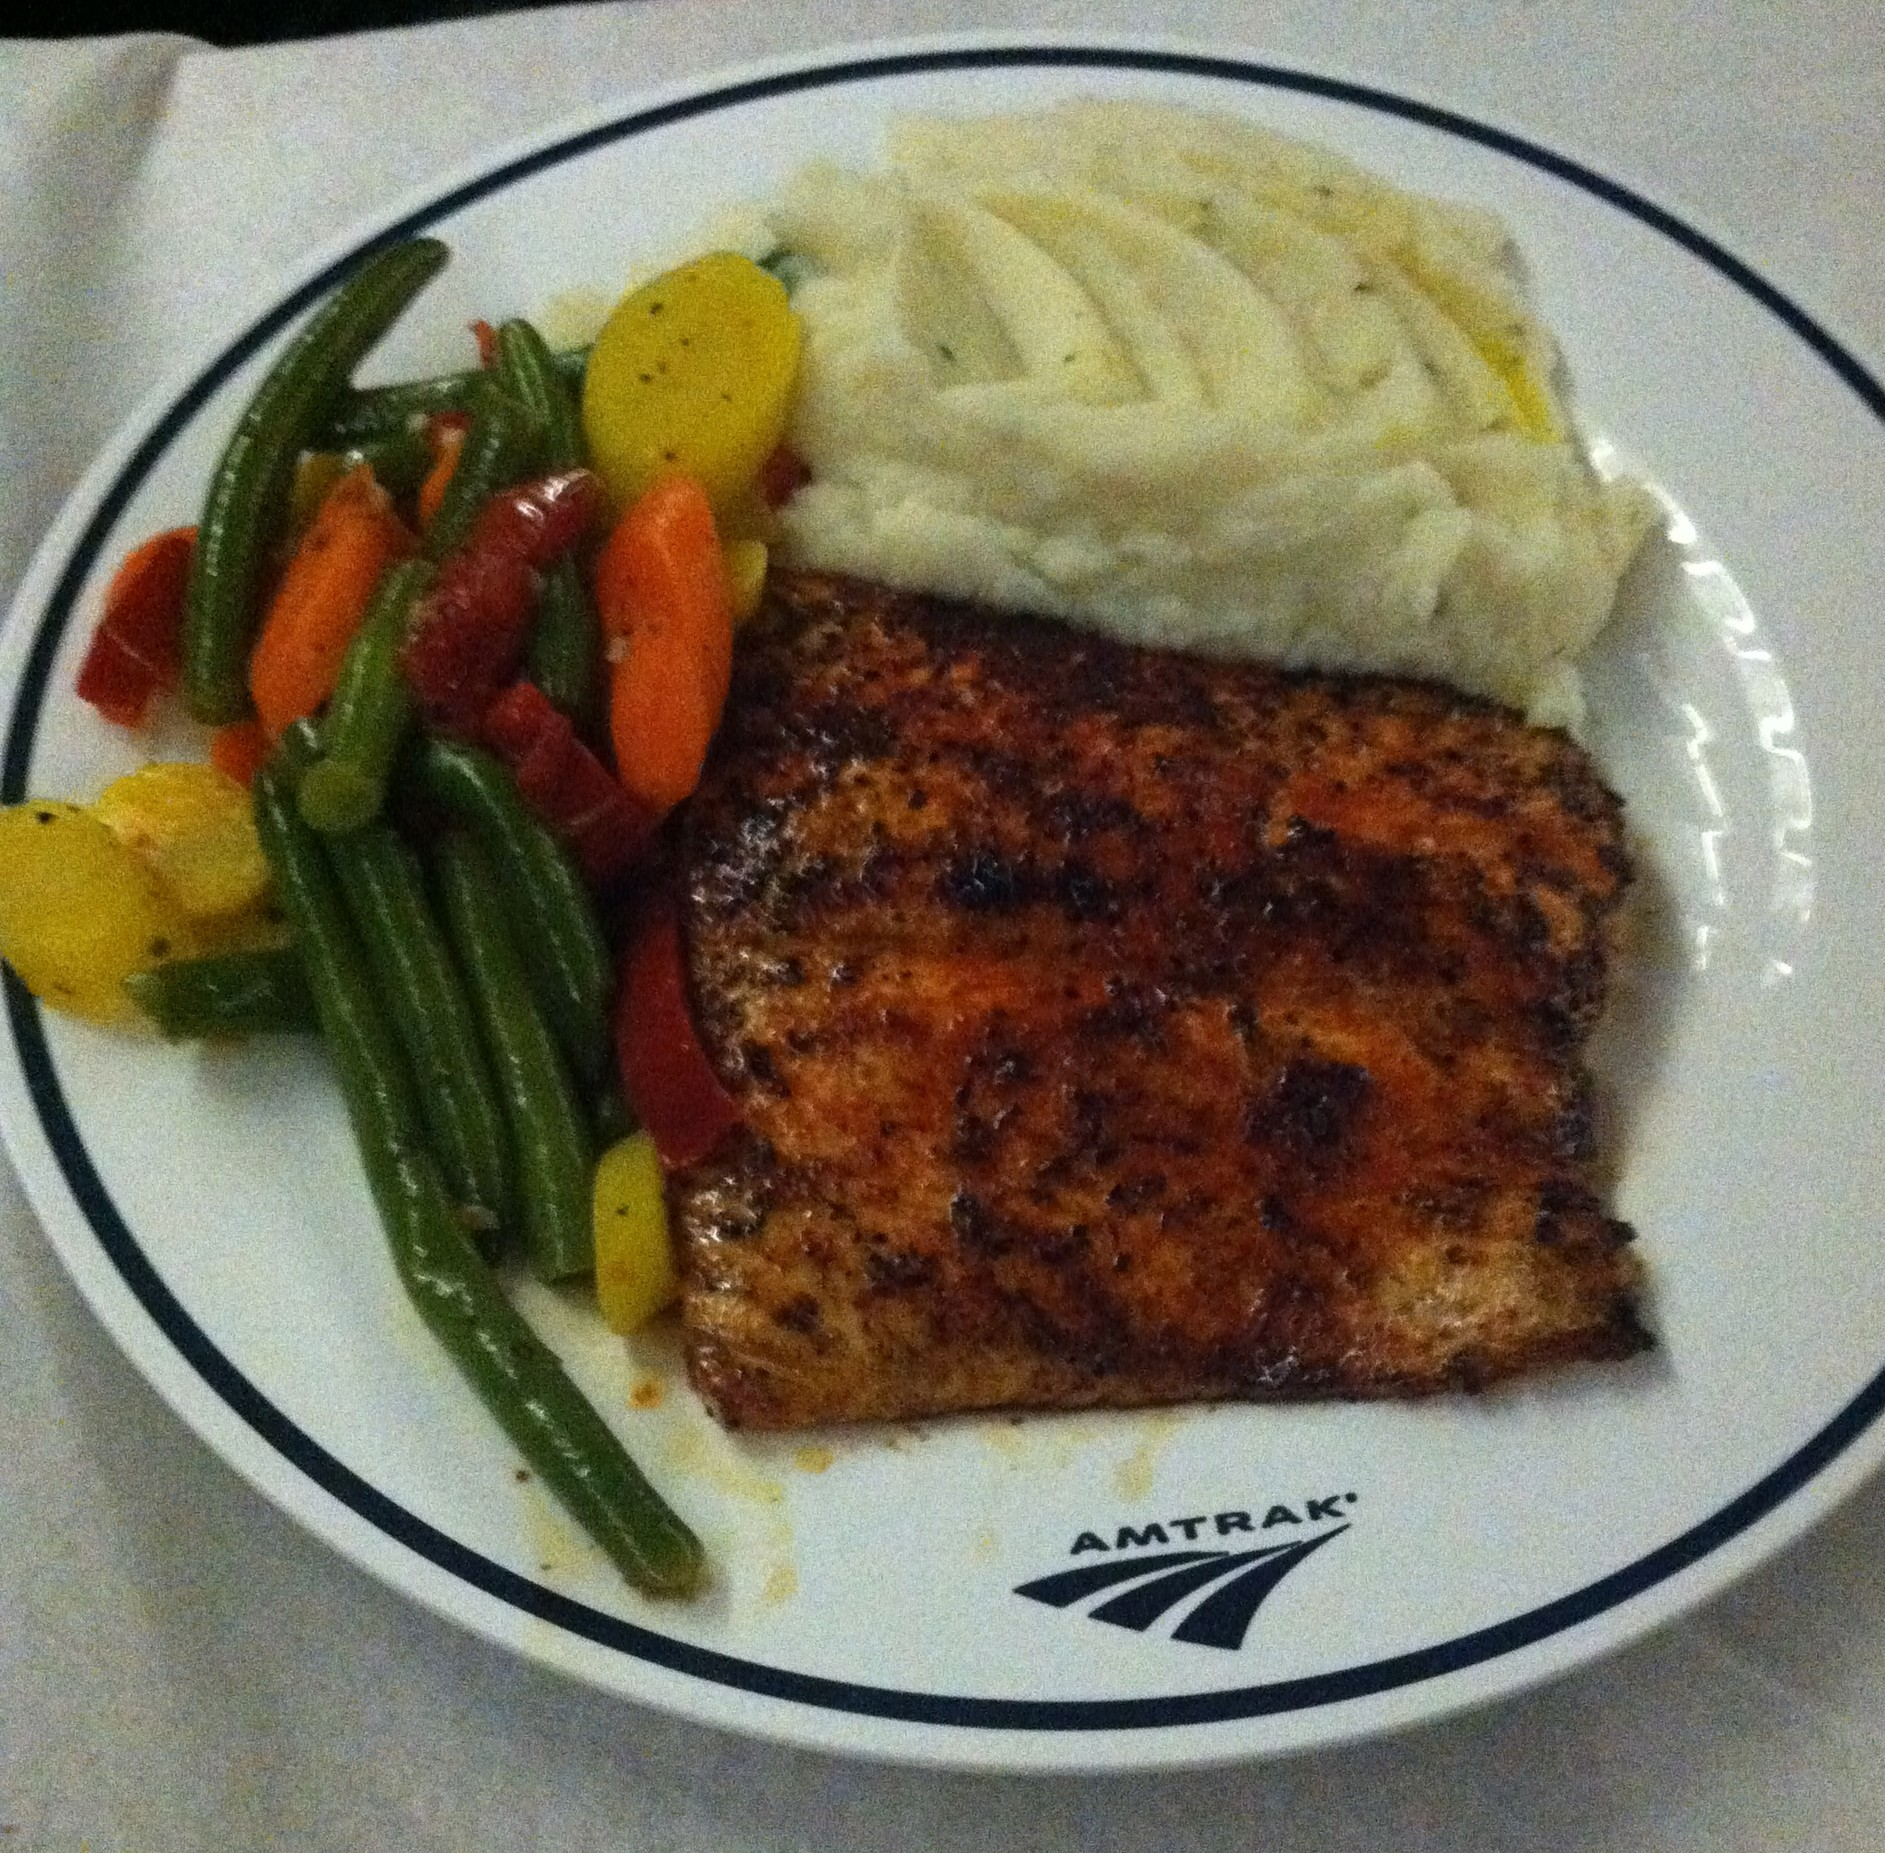 The salmon on the California Zephyr.